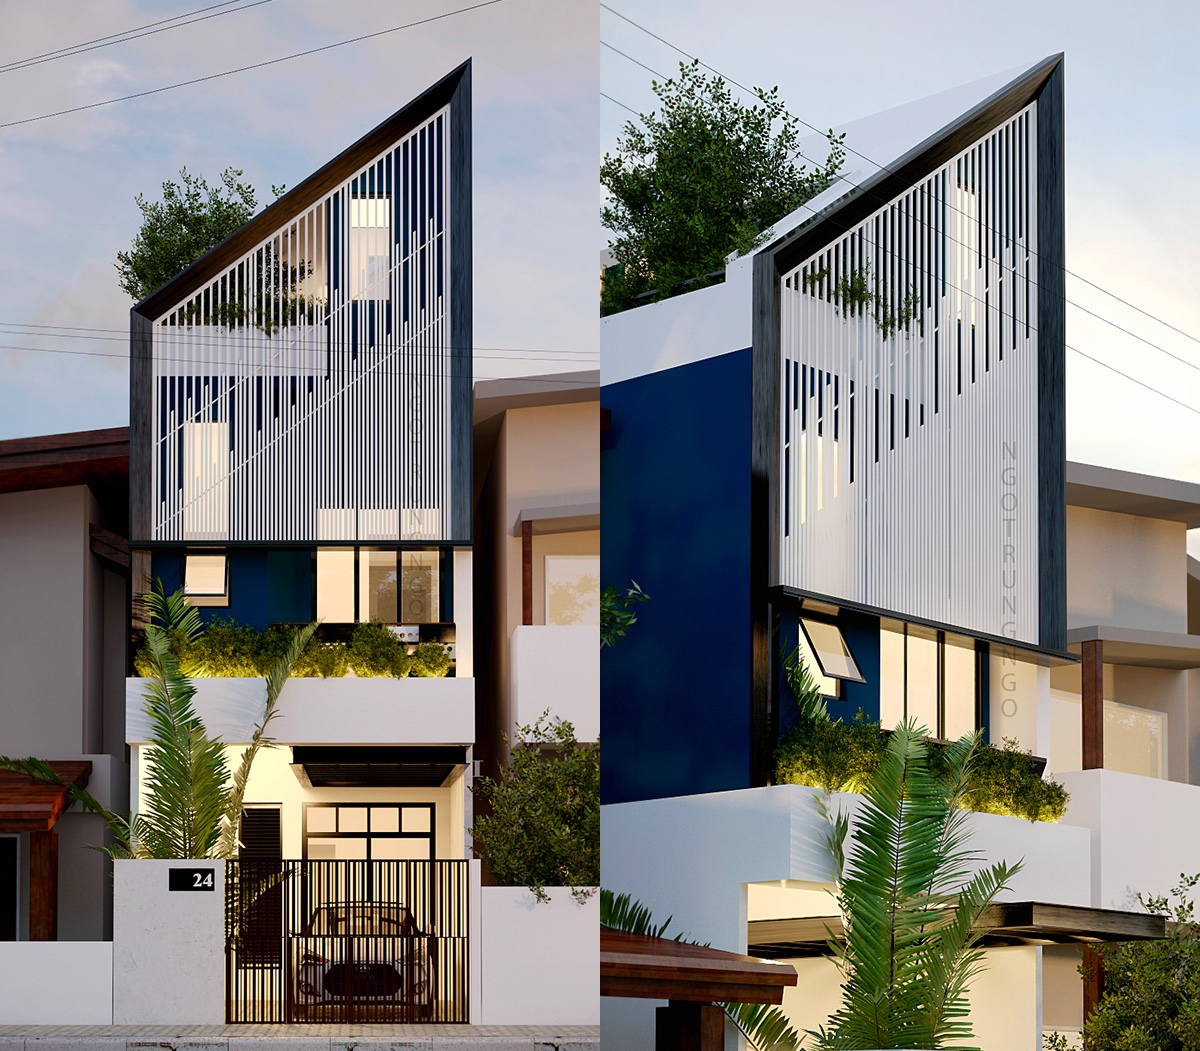 50 Narrow Lot Houses That Transform A Skinny Exterior Into Something Special images 21